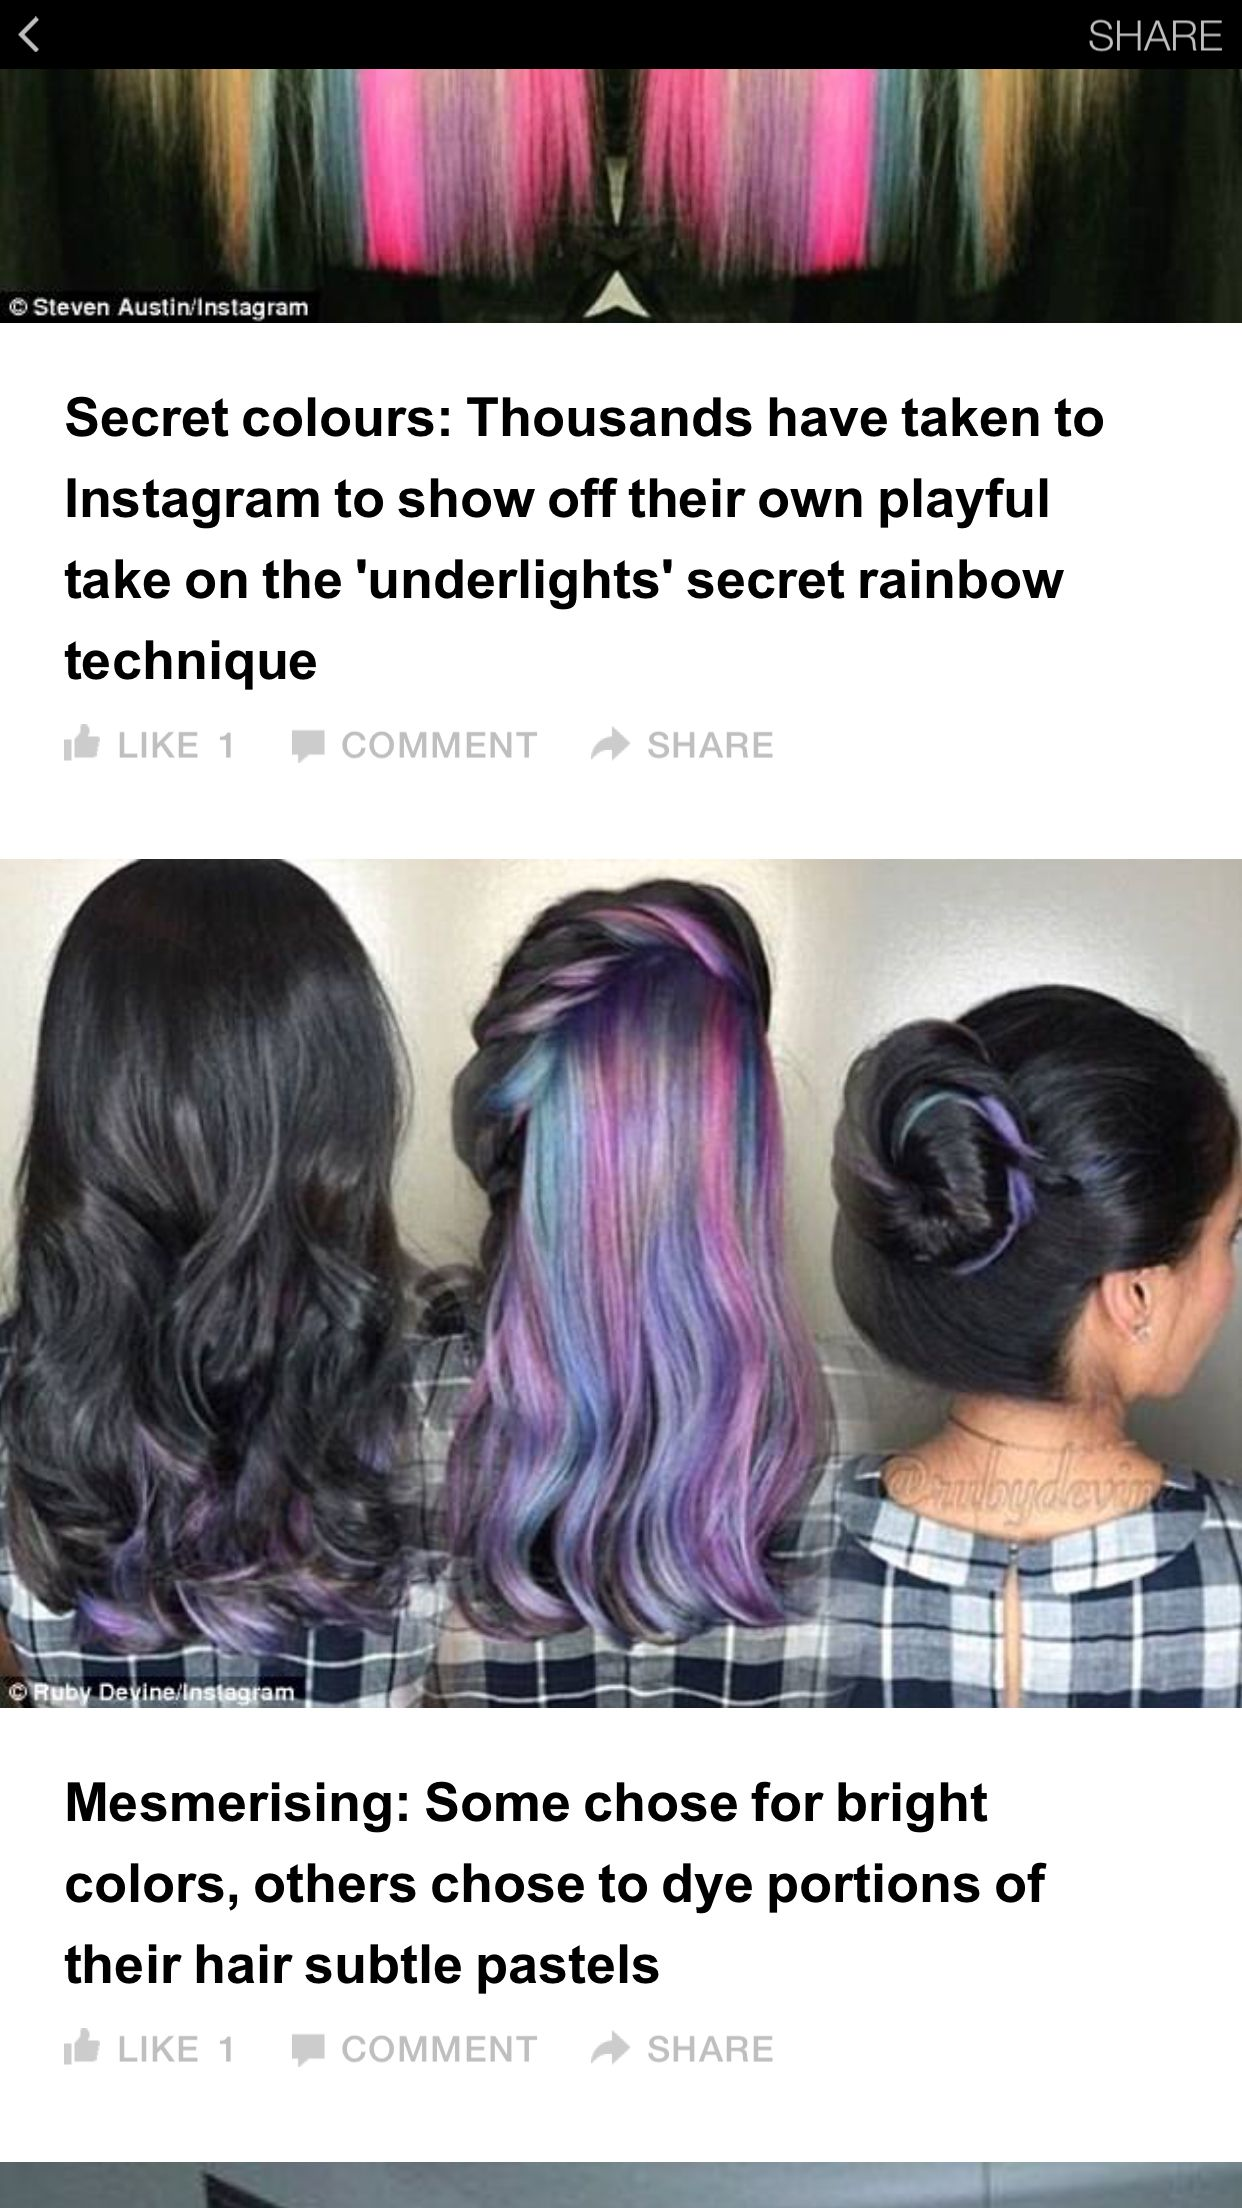 Color is in the middle portion not just underneath subtle but